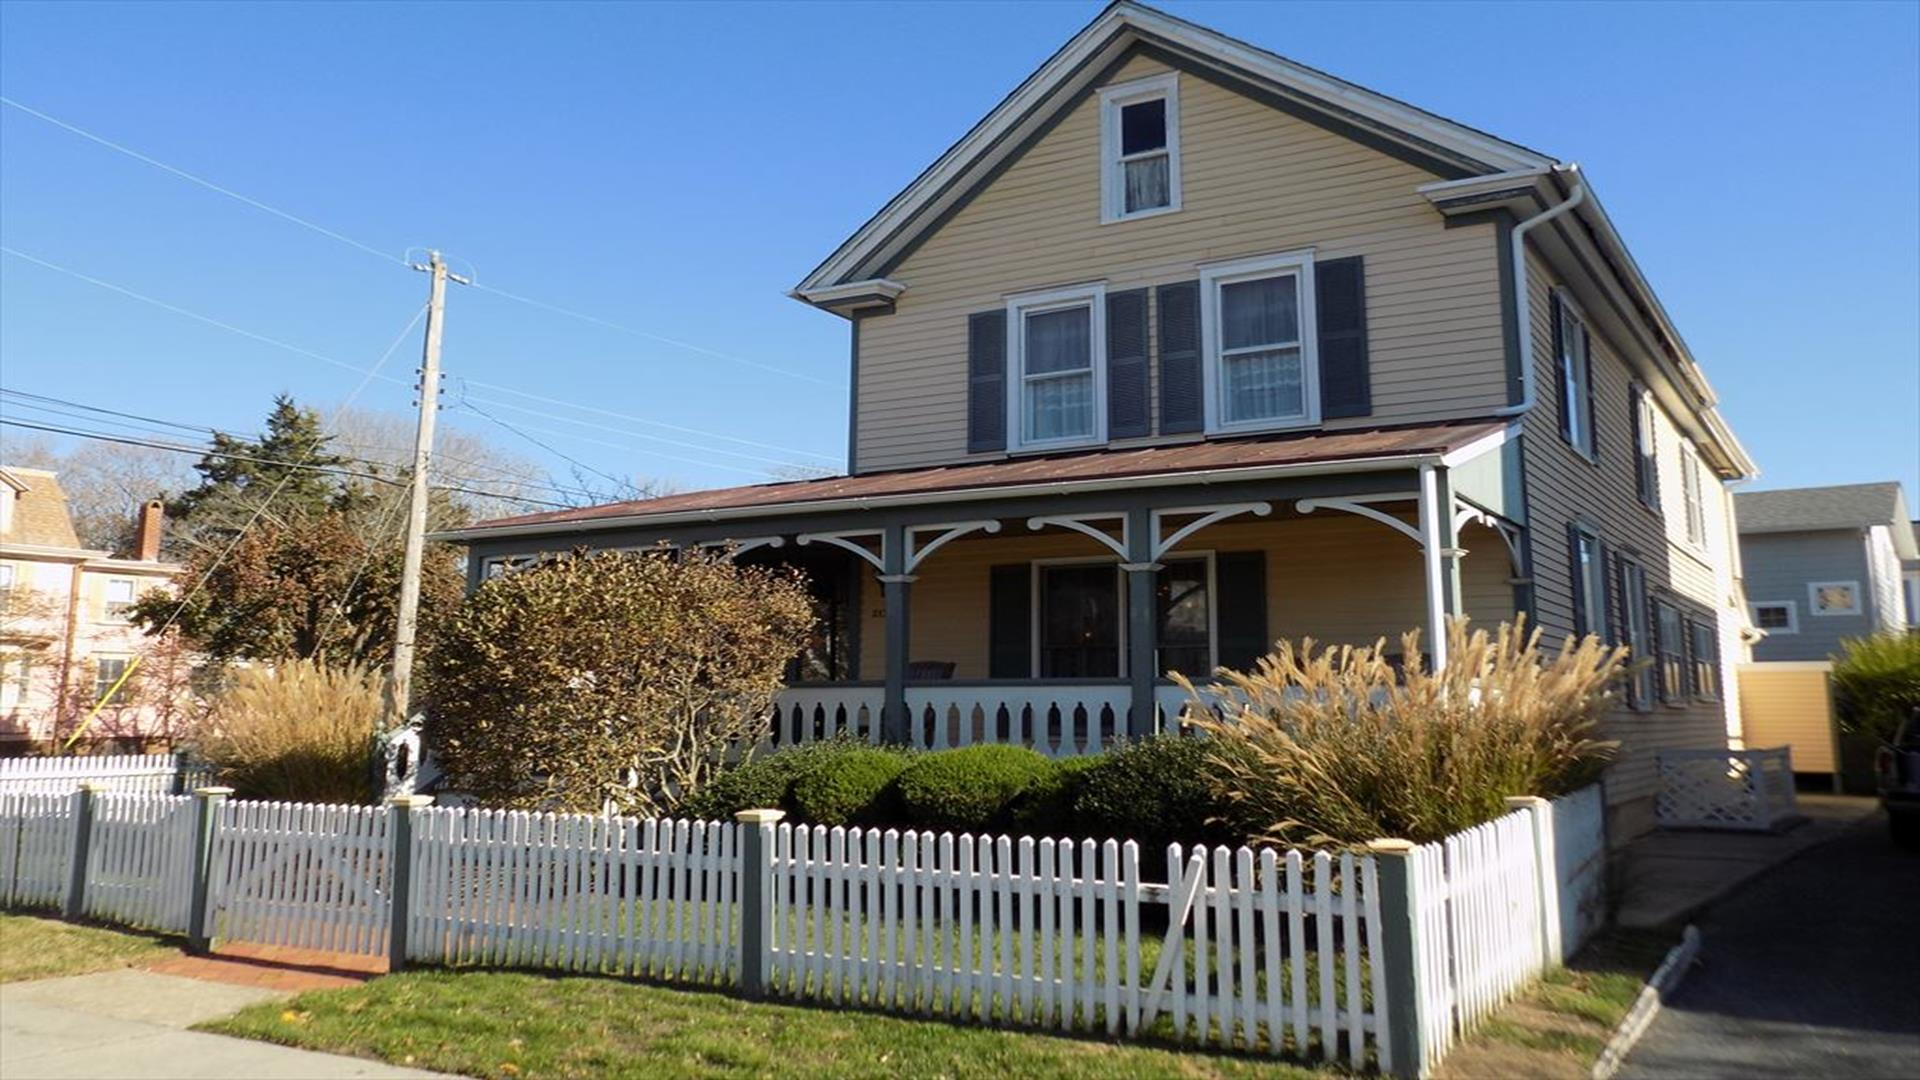 4 BEDROOM VICTORIAN CLOSE TO BEACH